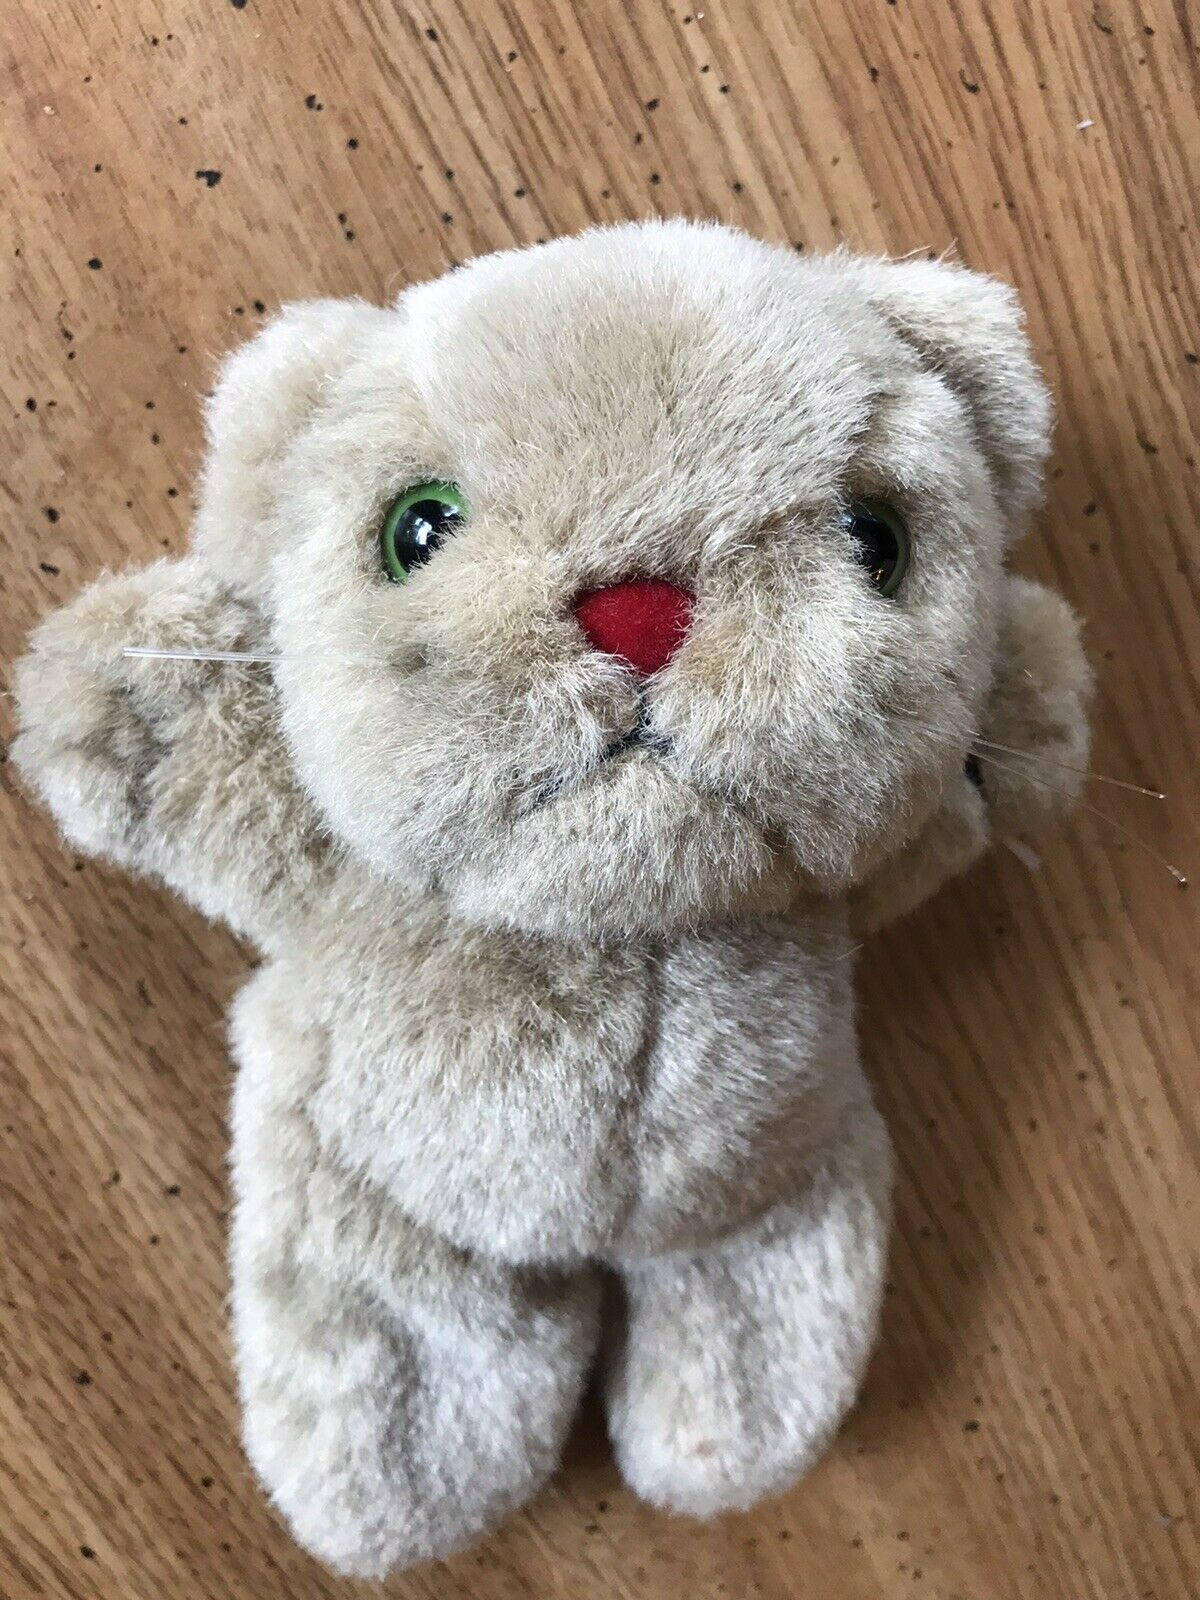 1988 Mr Rogers Daniel Tiger Plush Finger Puppet Family Communications Pbs For Sale Online Ebay